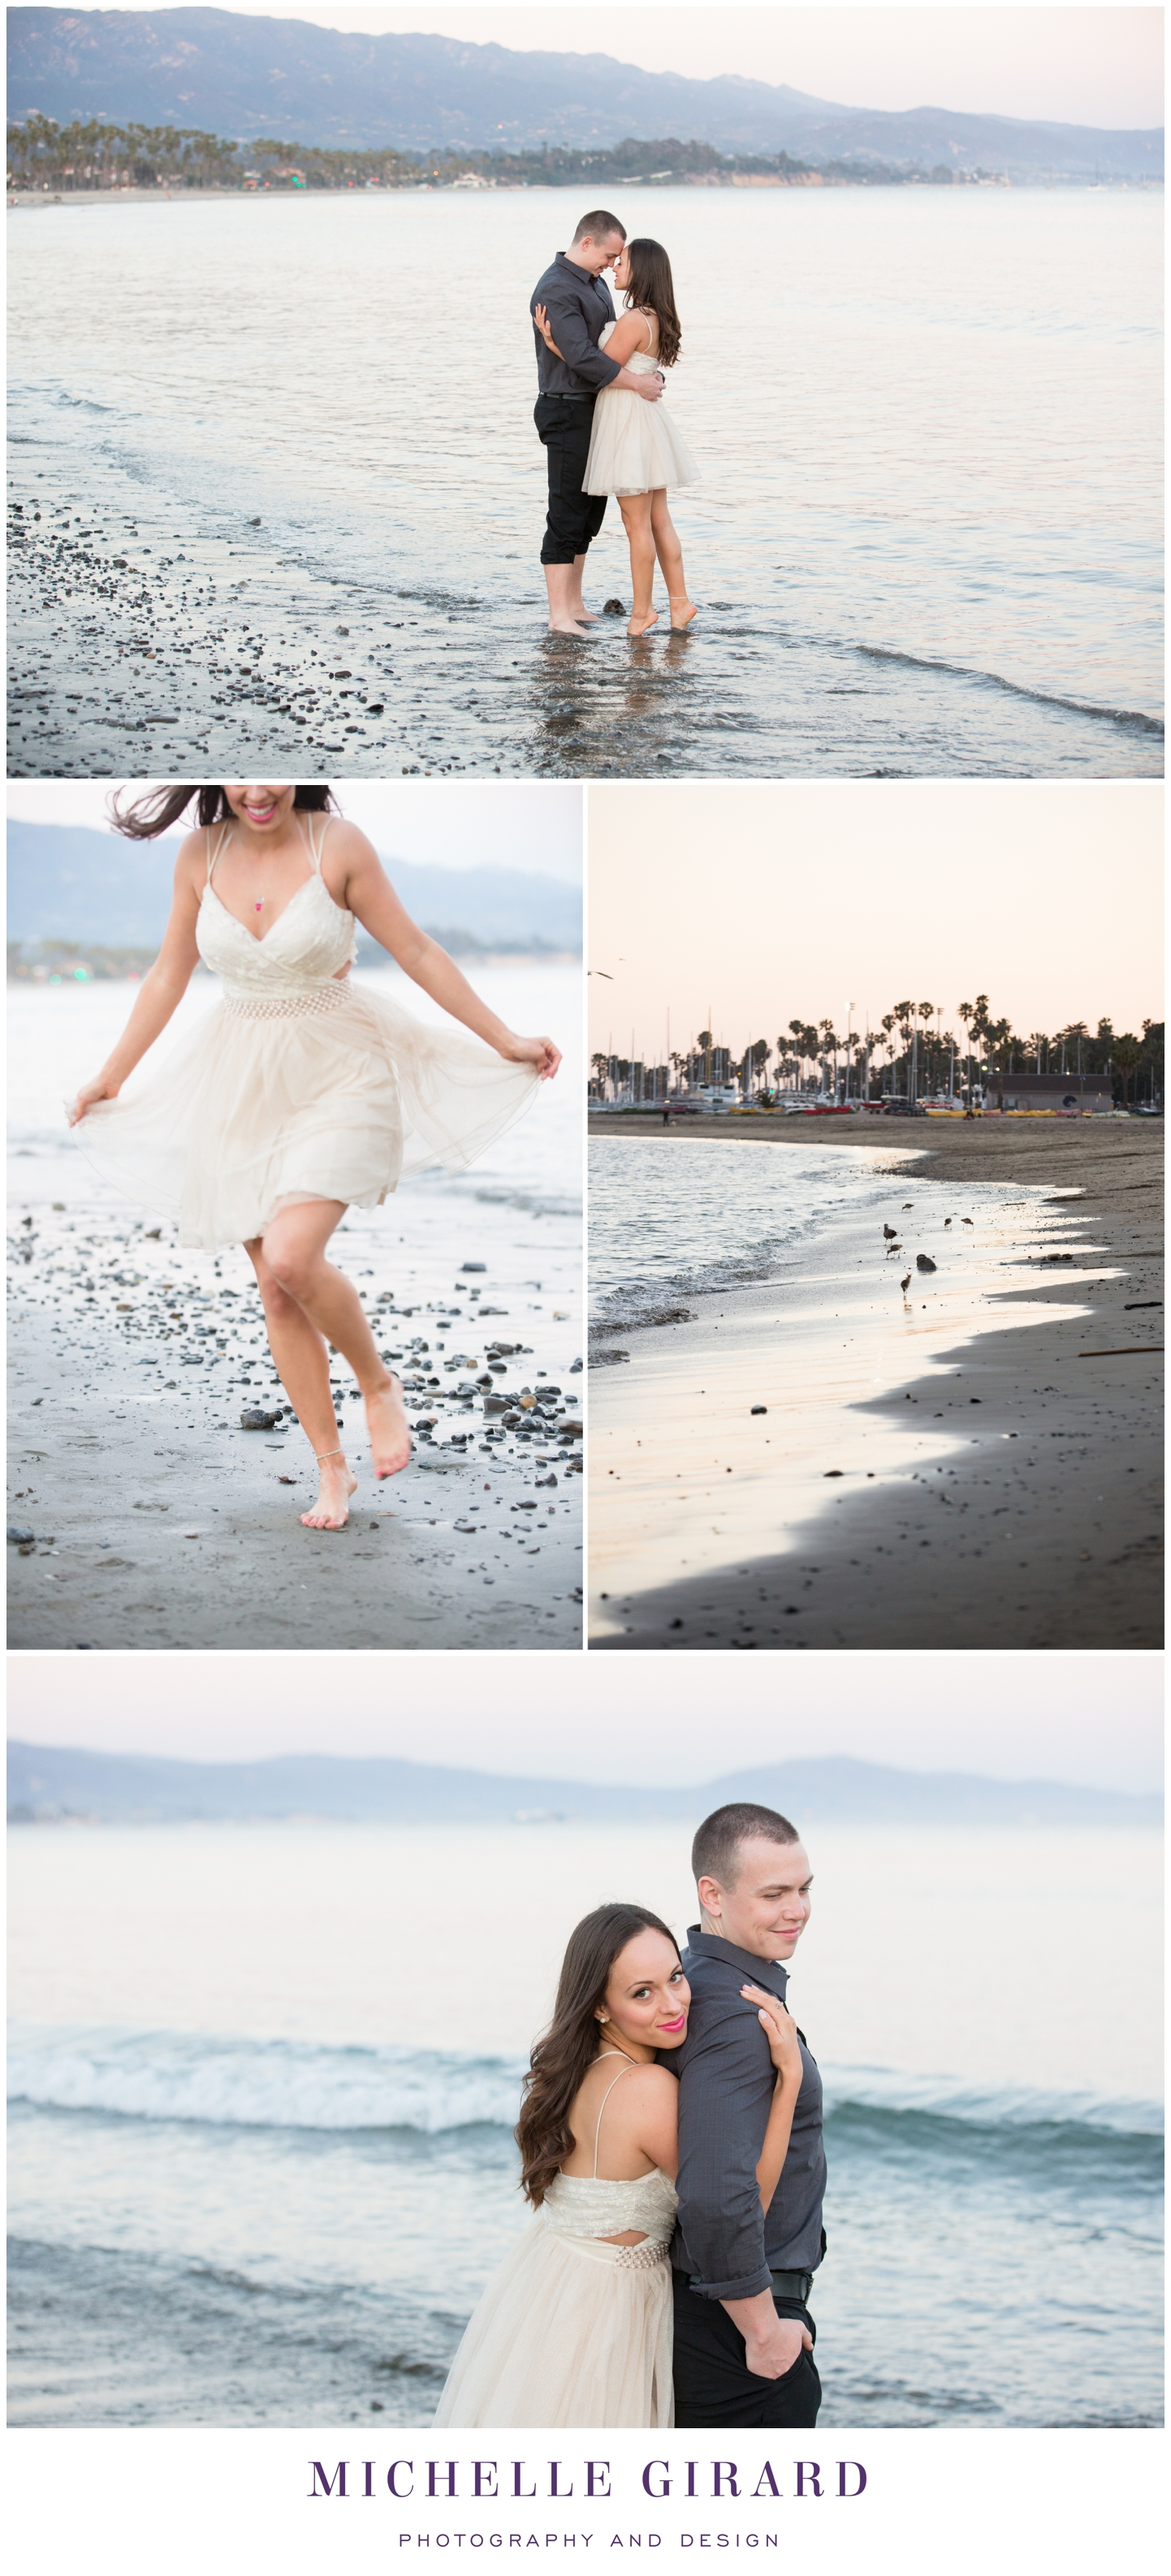 santa-barbara-sunset-beach-elopement-engagement-michelle-girard-photography-07b.jpg